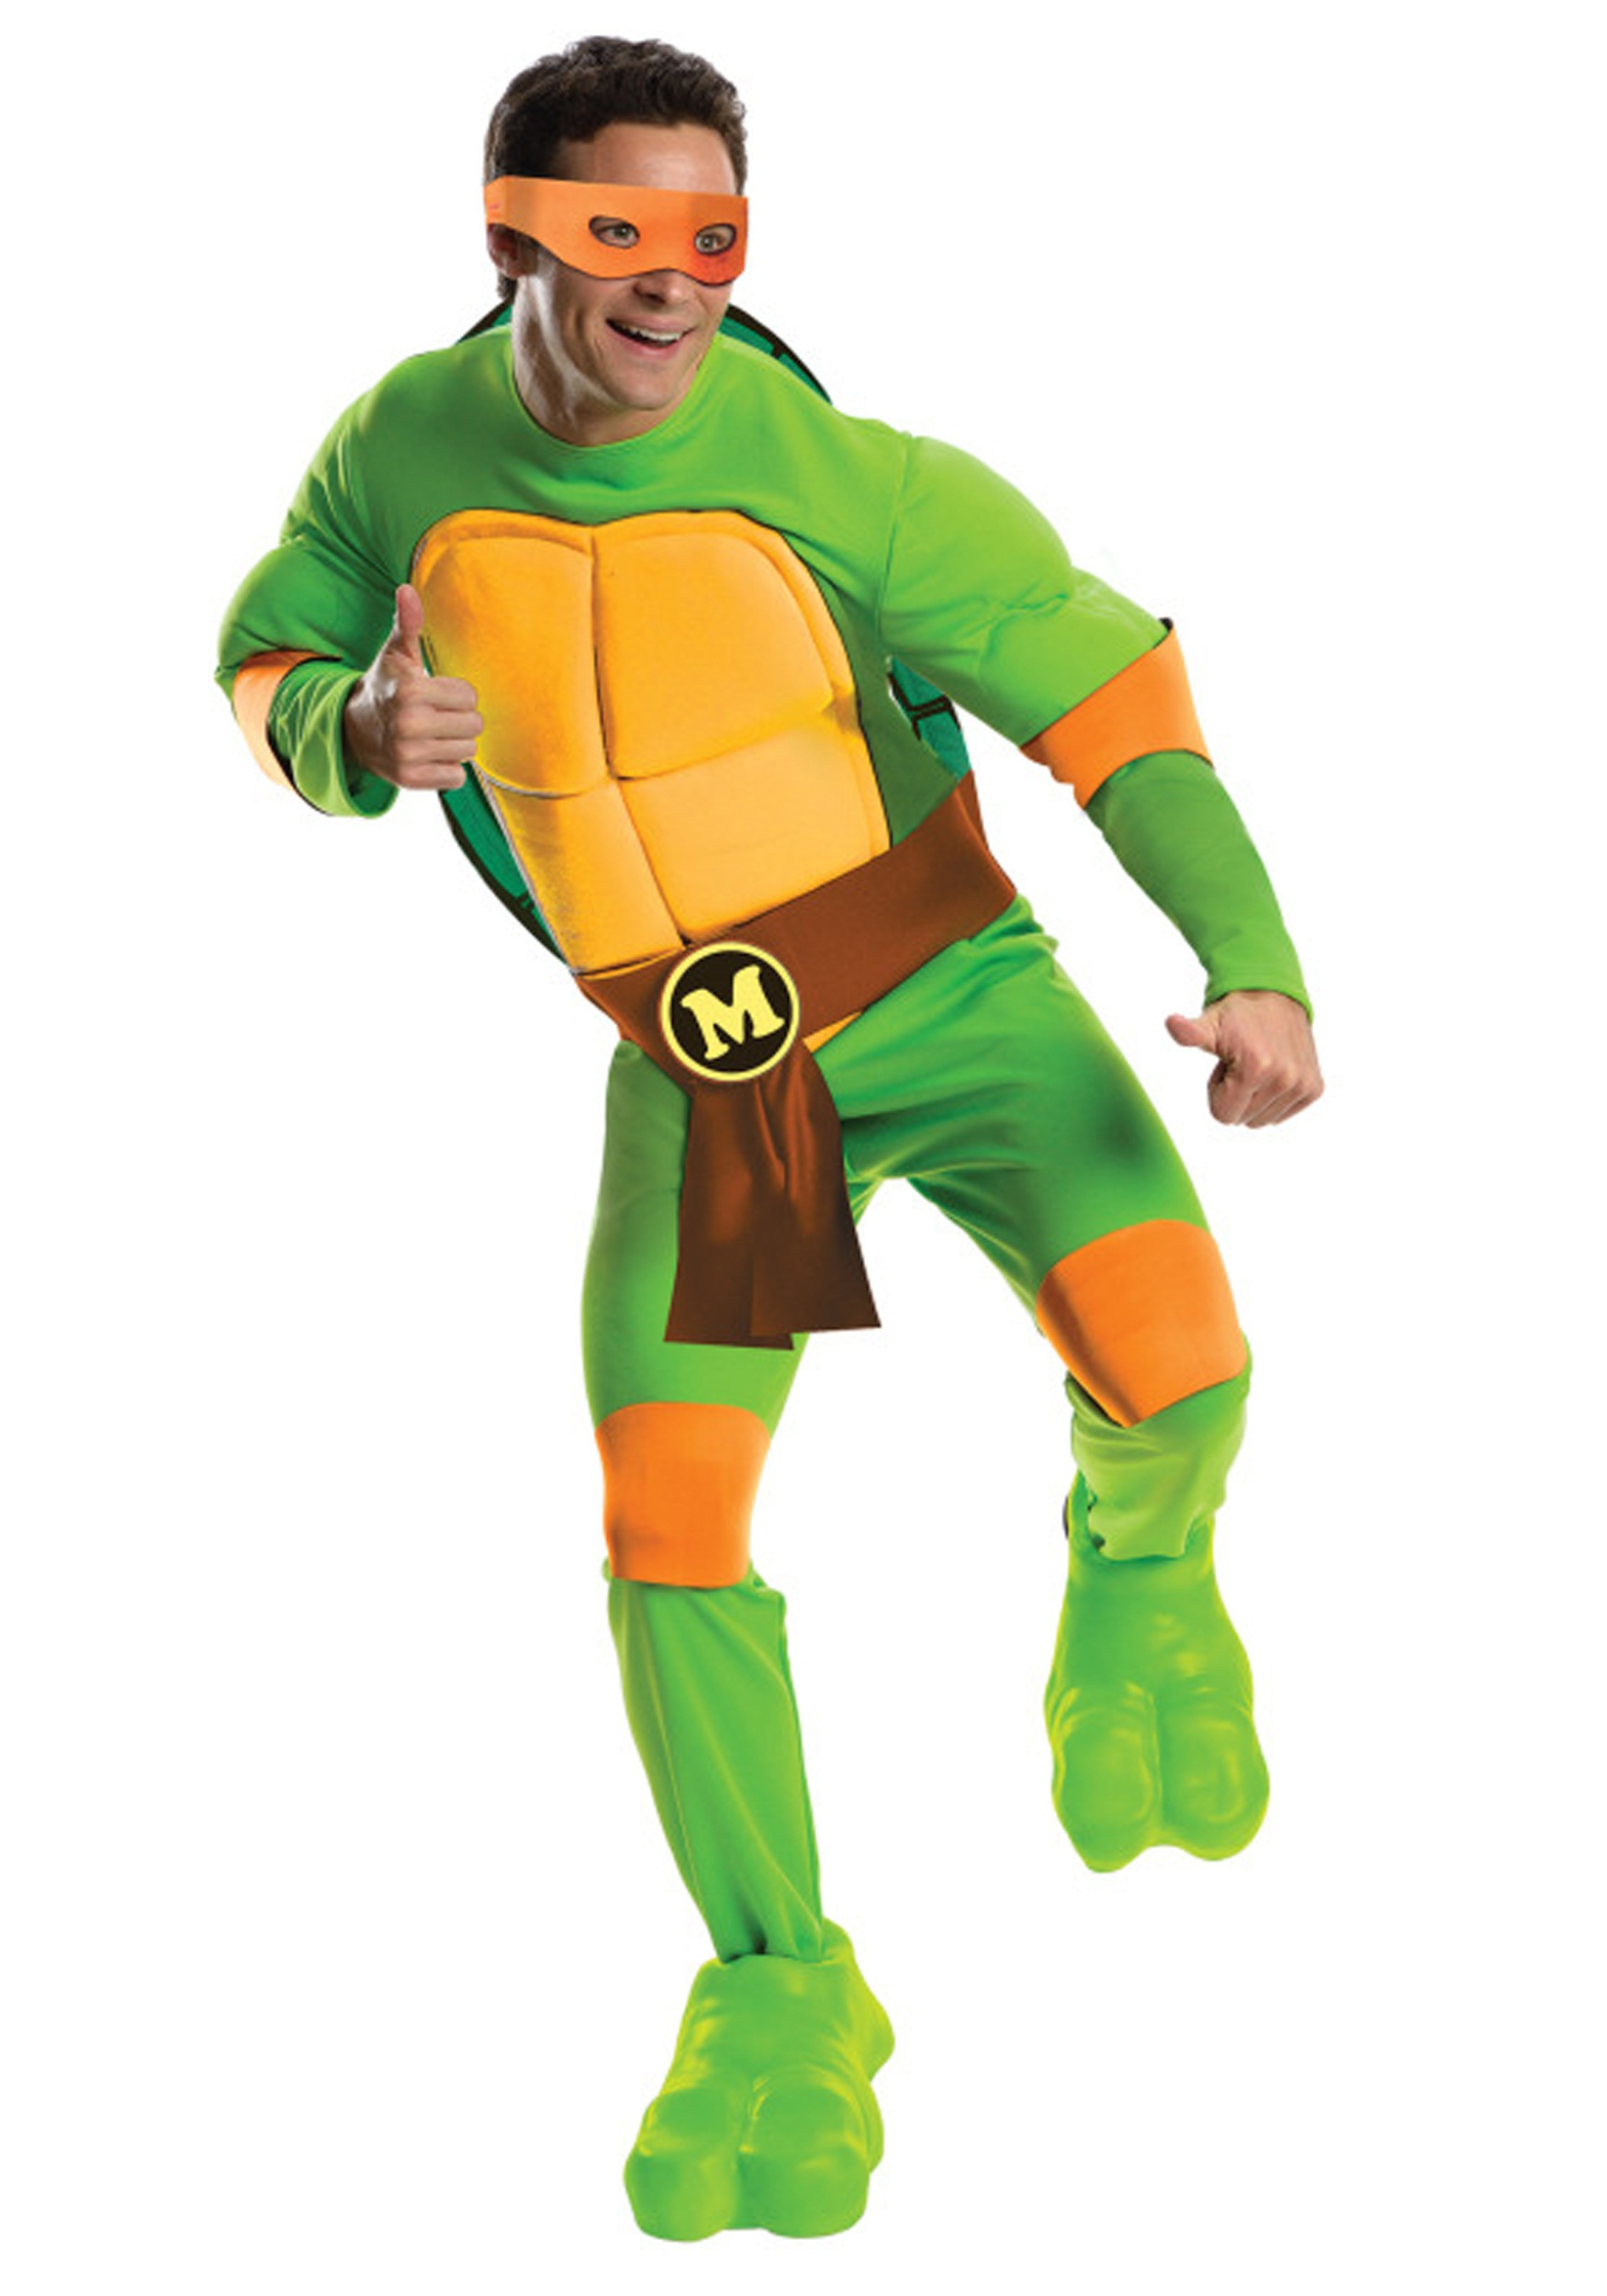 ninja-turtles-adult-costume-gujarati-girle-xxx-photo